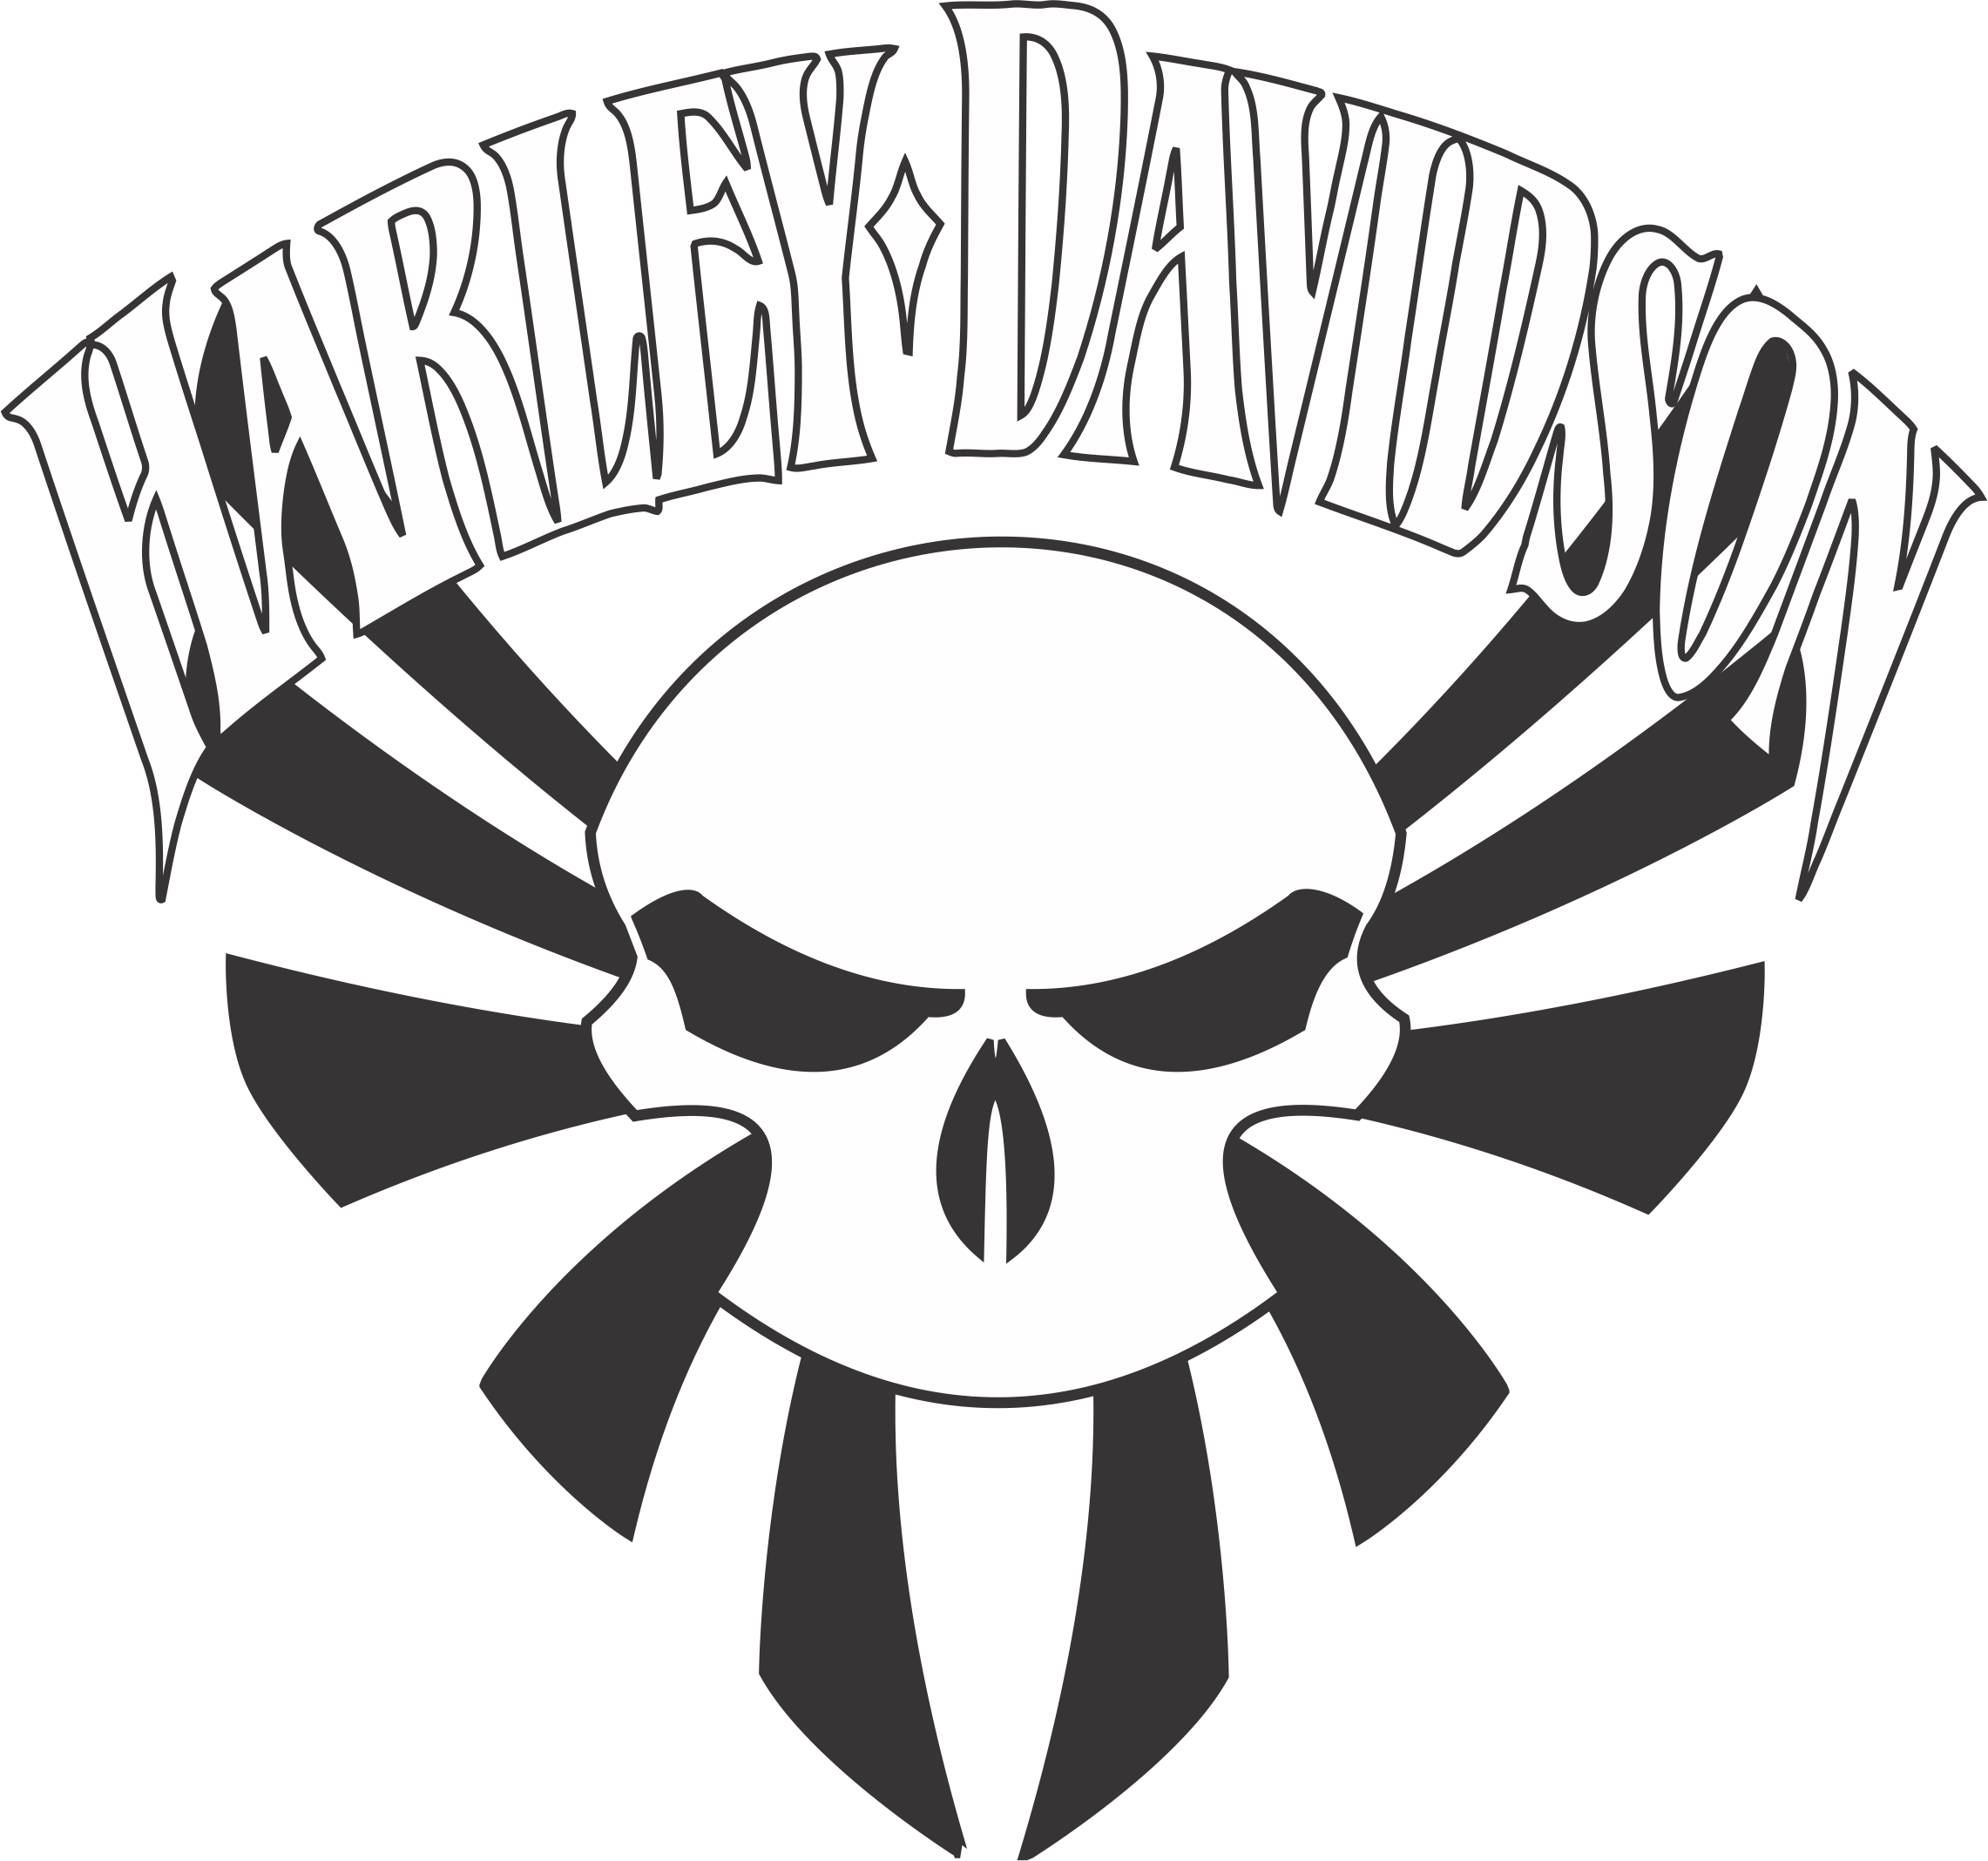 Harley Davidson Drawing Outline at GetDrawings.com | Free ...